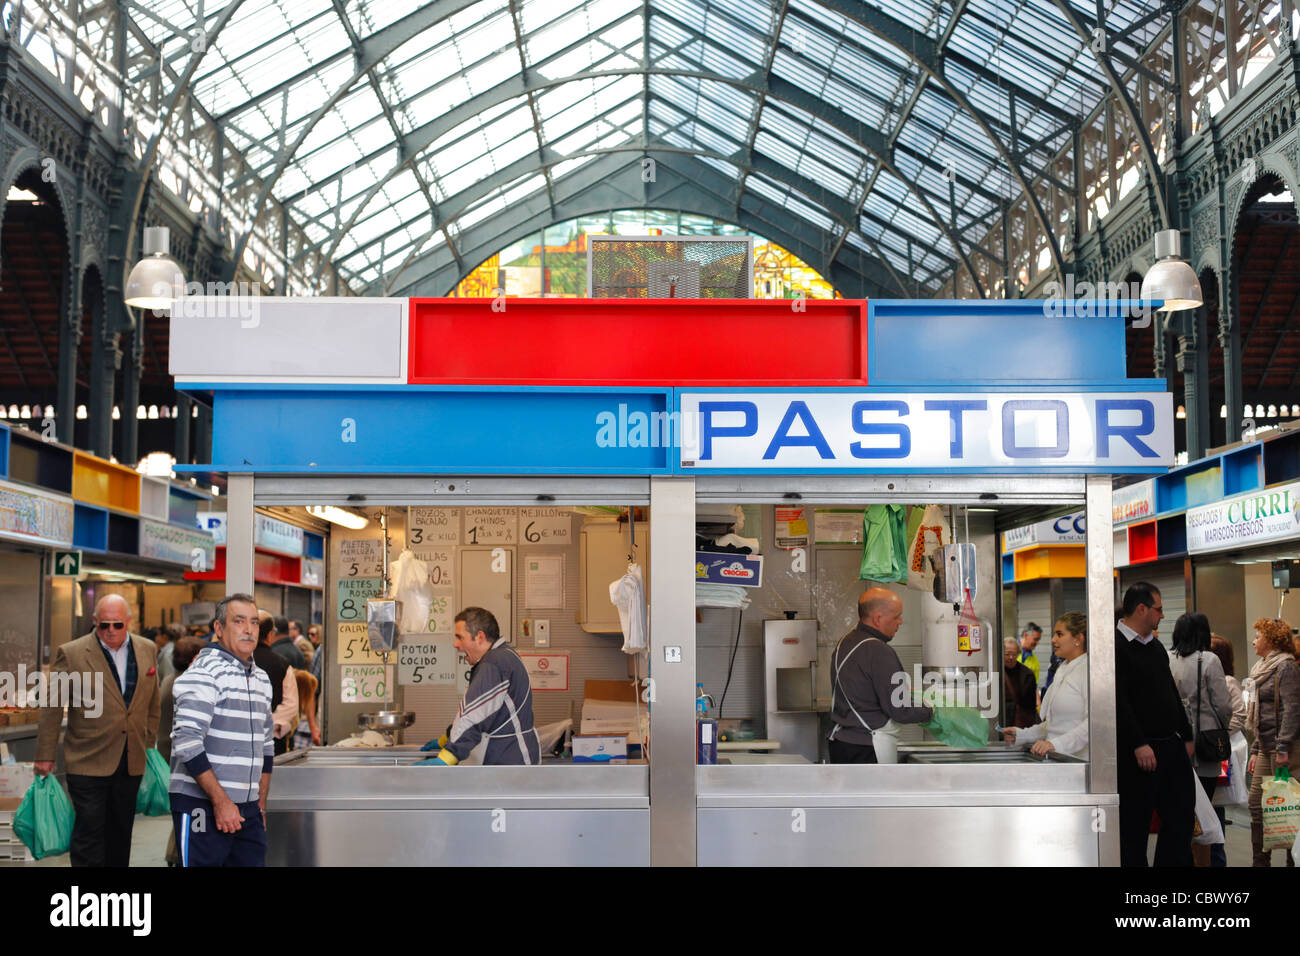 Buyers and sellers in Atarazanas market in Malaga, Spain - Stock Image